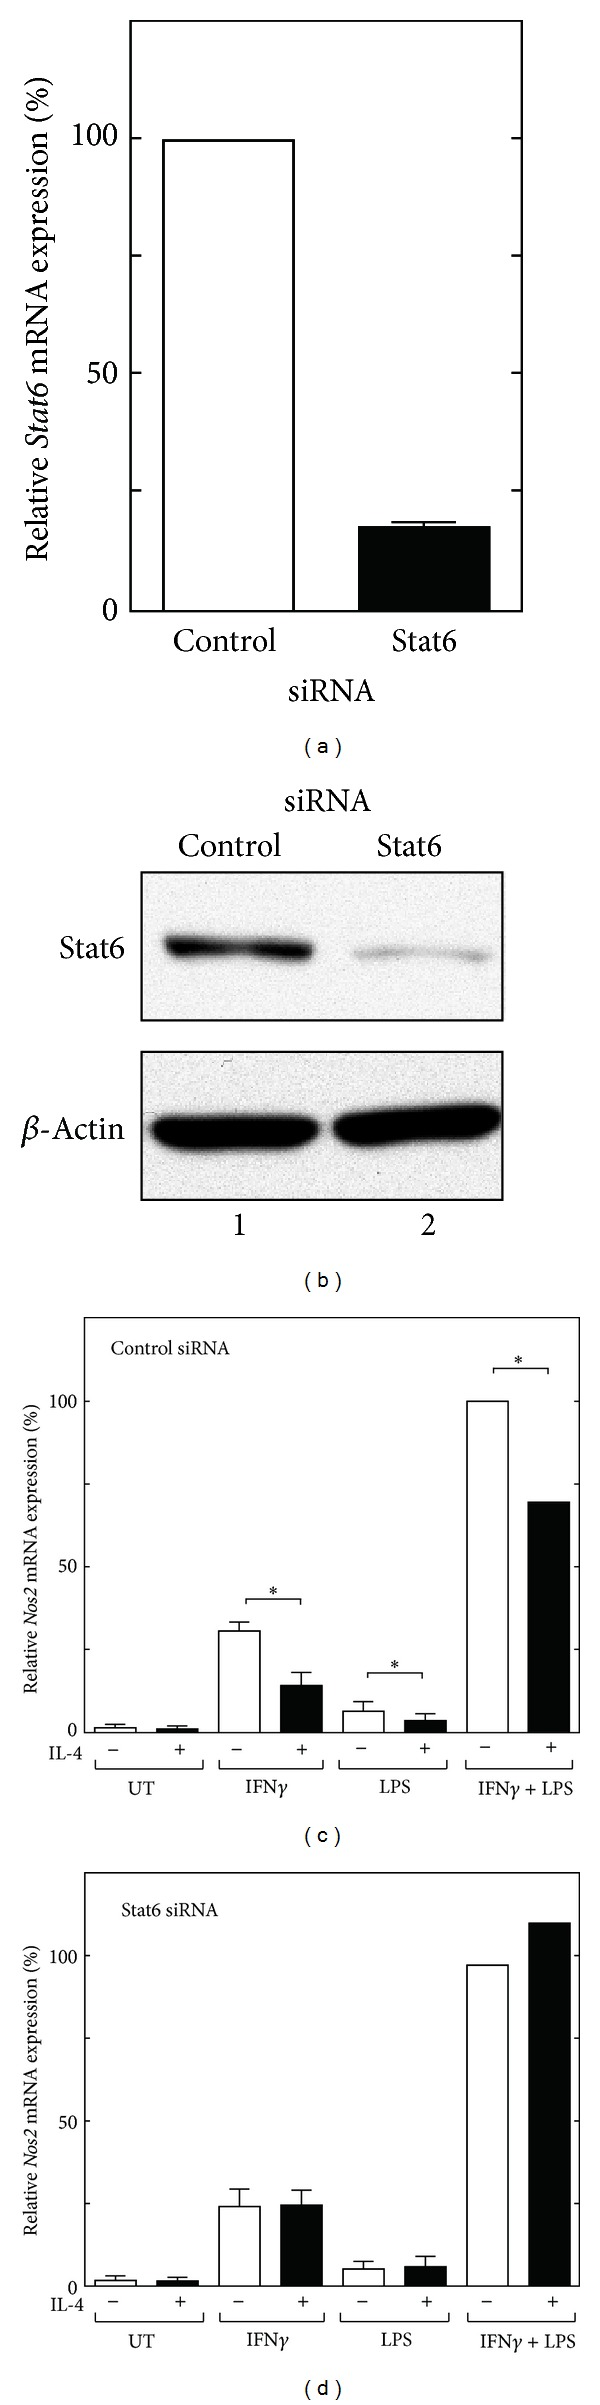 Stat6 is required for the IL-4-mediated inhibition of Nos2 gene expression in RAW264.7 cells. (a) RAW264.7 cells were transfected with control siRNA (100 nM) or Stat6 siRNA (100 nM) for 36 hours; total RNA was then prepared for quantitative real-time RT-PCR. Each column and bar represents the mean ± SEM of three independent experiments. (b) RAW264.7 cells were transfected with siRNA, as described above, and then used to prepare total cellular lysates for a western blot analysis using an anti-Stat6 antibody. (c, d) RAW264.7 cells were transfected with control siRNA (100 nM) or Stat6 siRNA (100 nM). Thirty-six hours after transfection, the cells were either left untreated (UT) or treated with IL-4 (10 ng/mL) for 30 min prior to stimulation with IFN γ (10 ng/mL) and/or LPS (100 ng/mL) for 8 hours before the preparation of total RNA for quantitative real-time RT-PCR. The relative Nos2 mRNA expression levels are shown as percentages of the activity of cells transfected with the control siRNA and stimulated with IFN γ and LPS. Each column and bar represents the mean ± SEM of three independent experiments. The asterisks denote a statistically significant difference compared to the cultures treated with IL-4 ( P